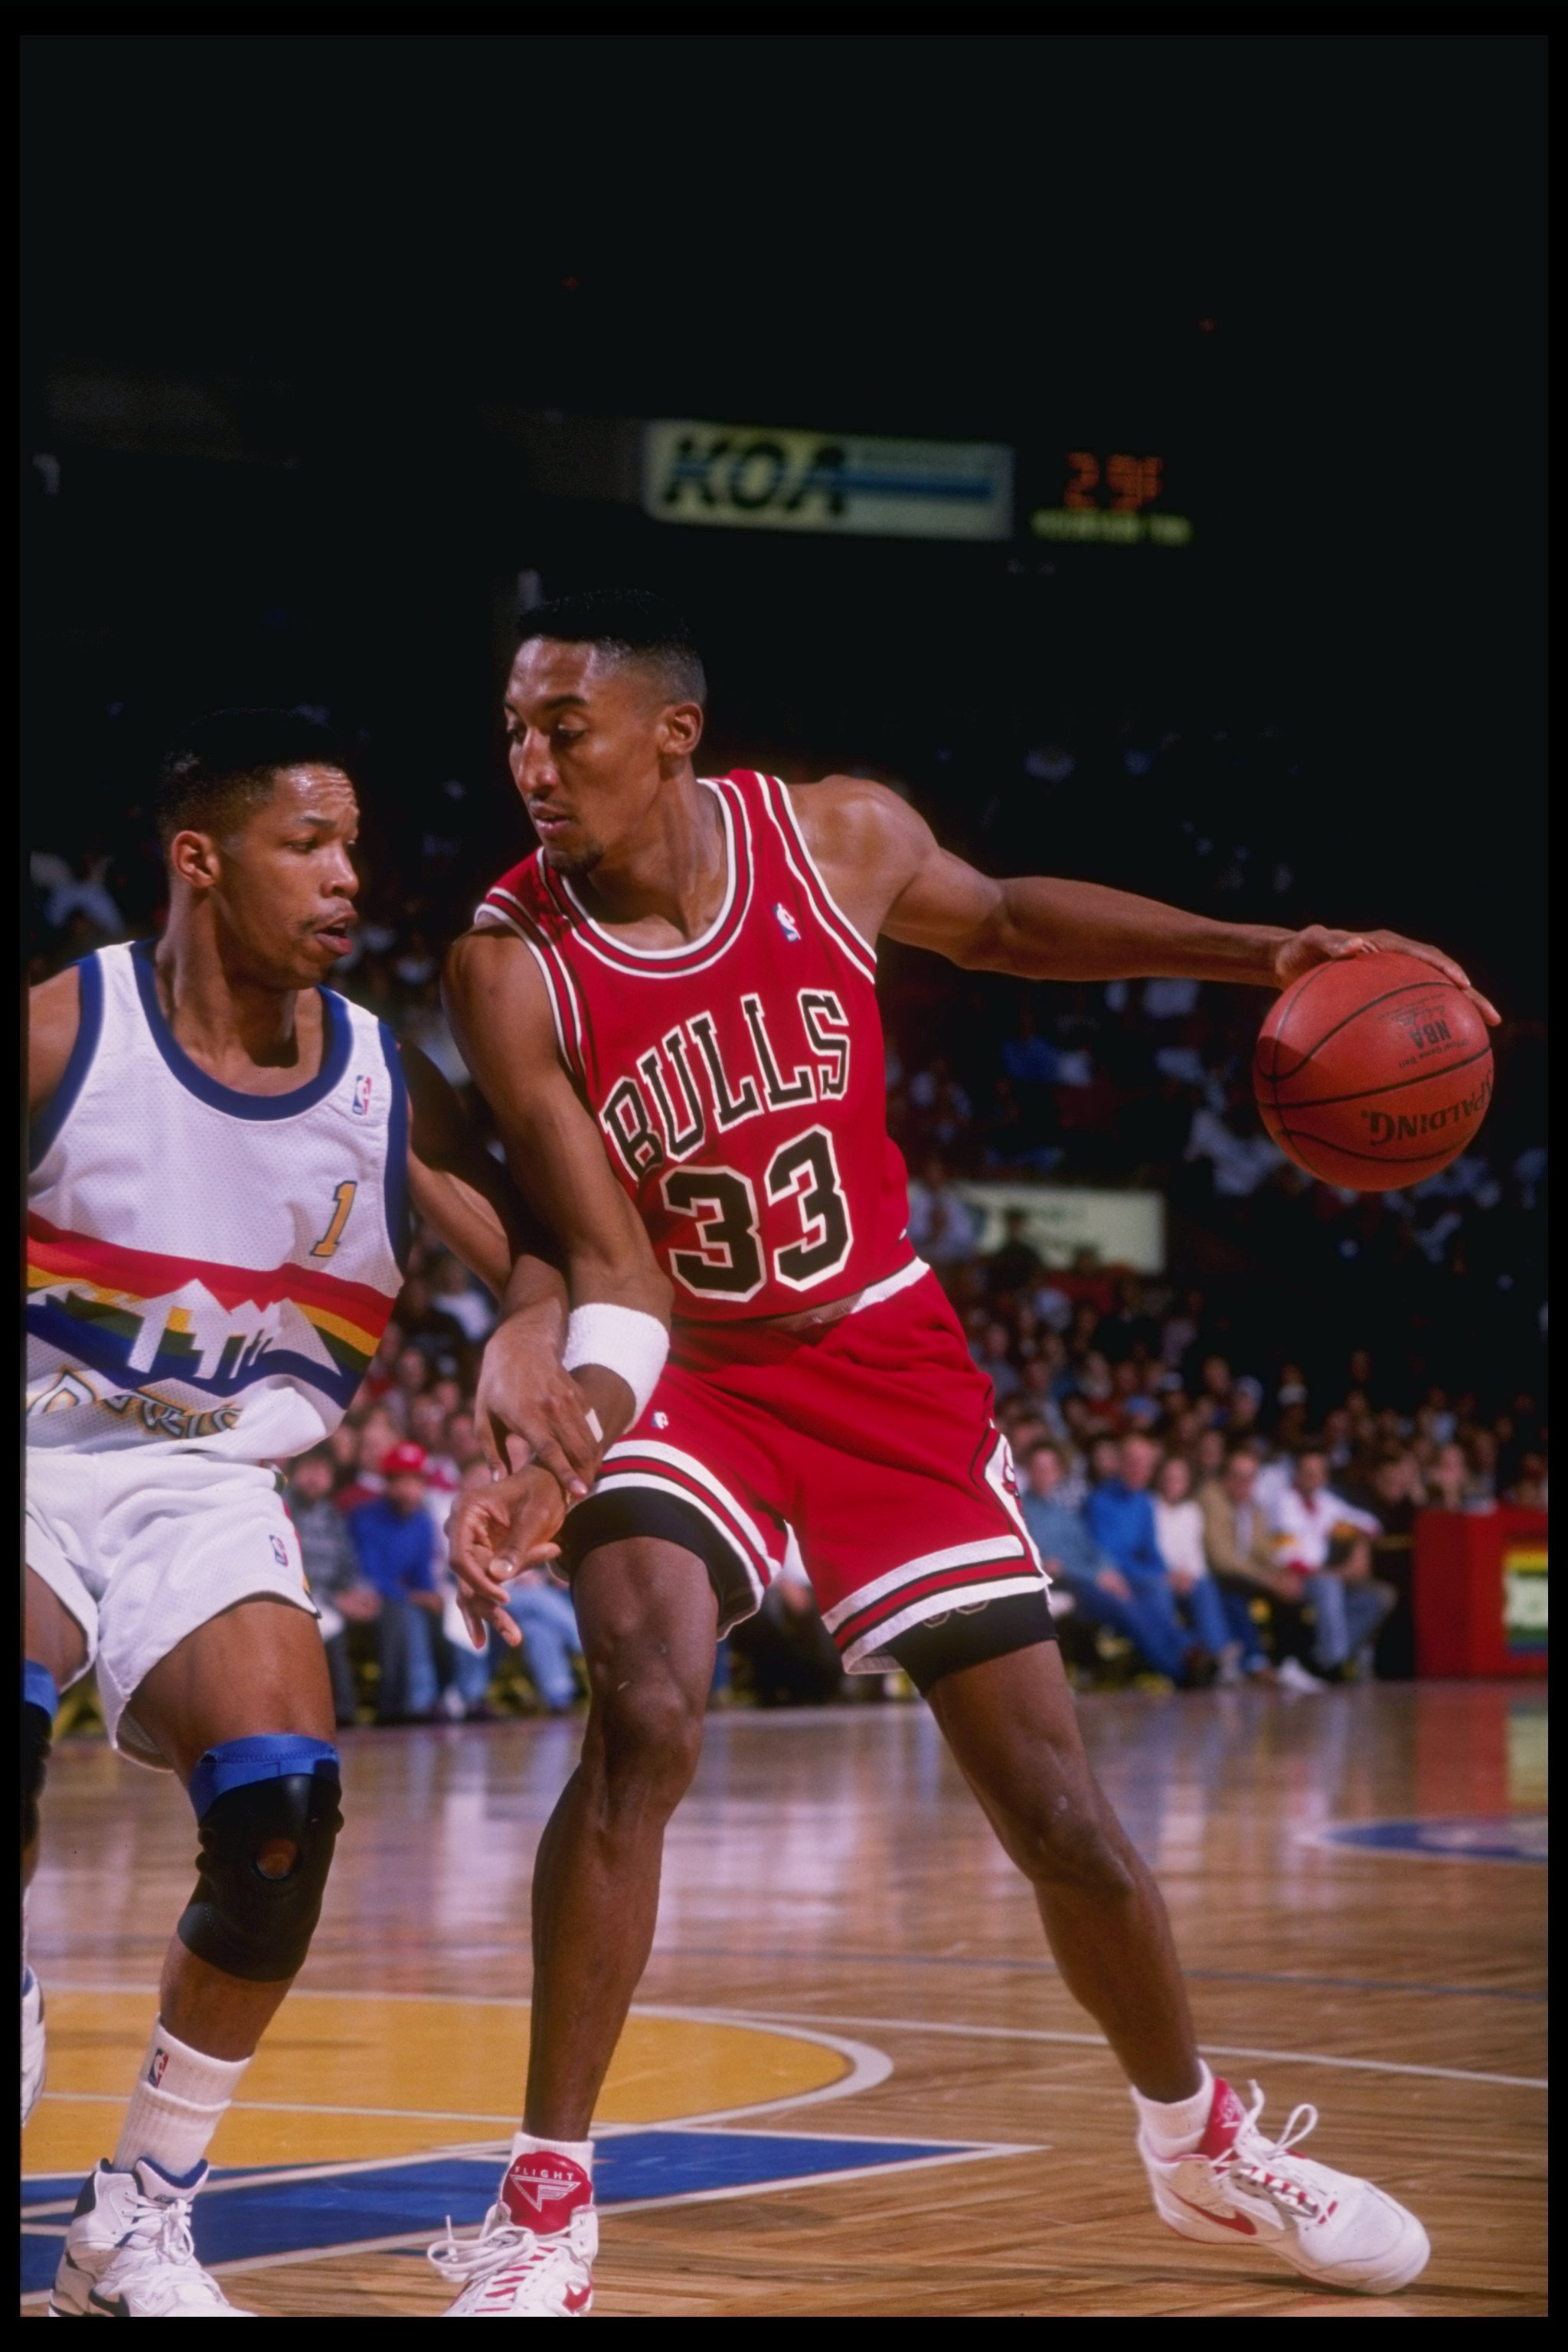 23 Nov 1991: Forward Scottie Pippen of the Chicago Bulls in action during a game against the Denver Nuggets at the McNichols Sports Arena in Denver, Colorado.